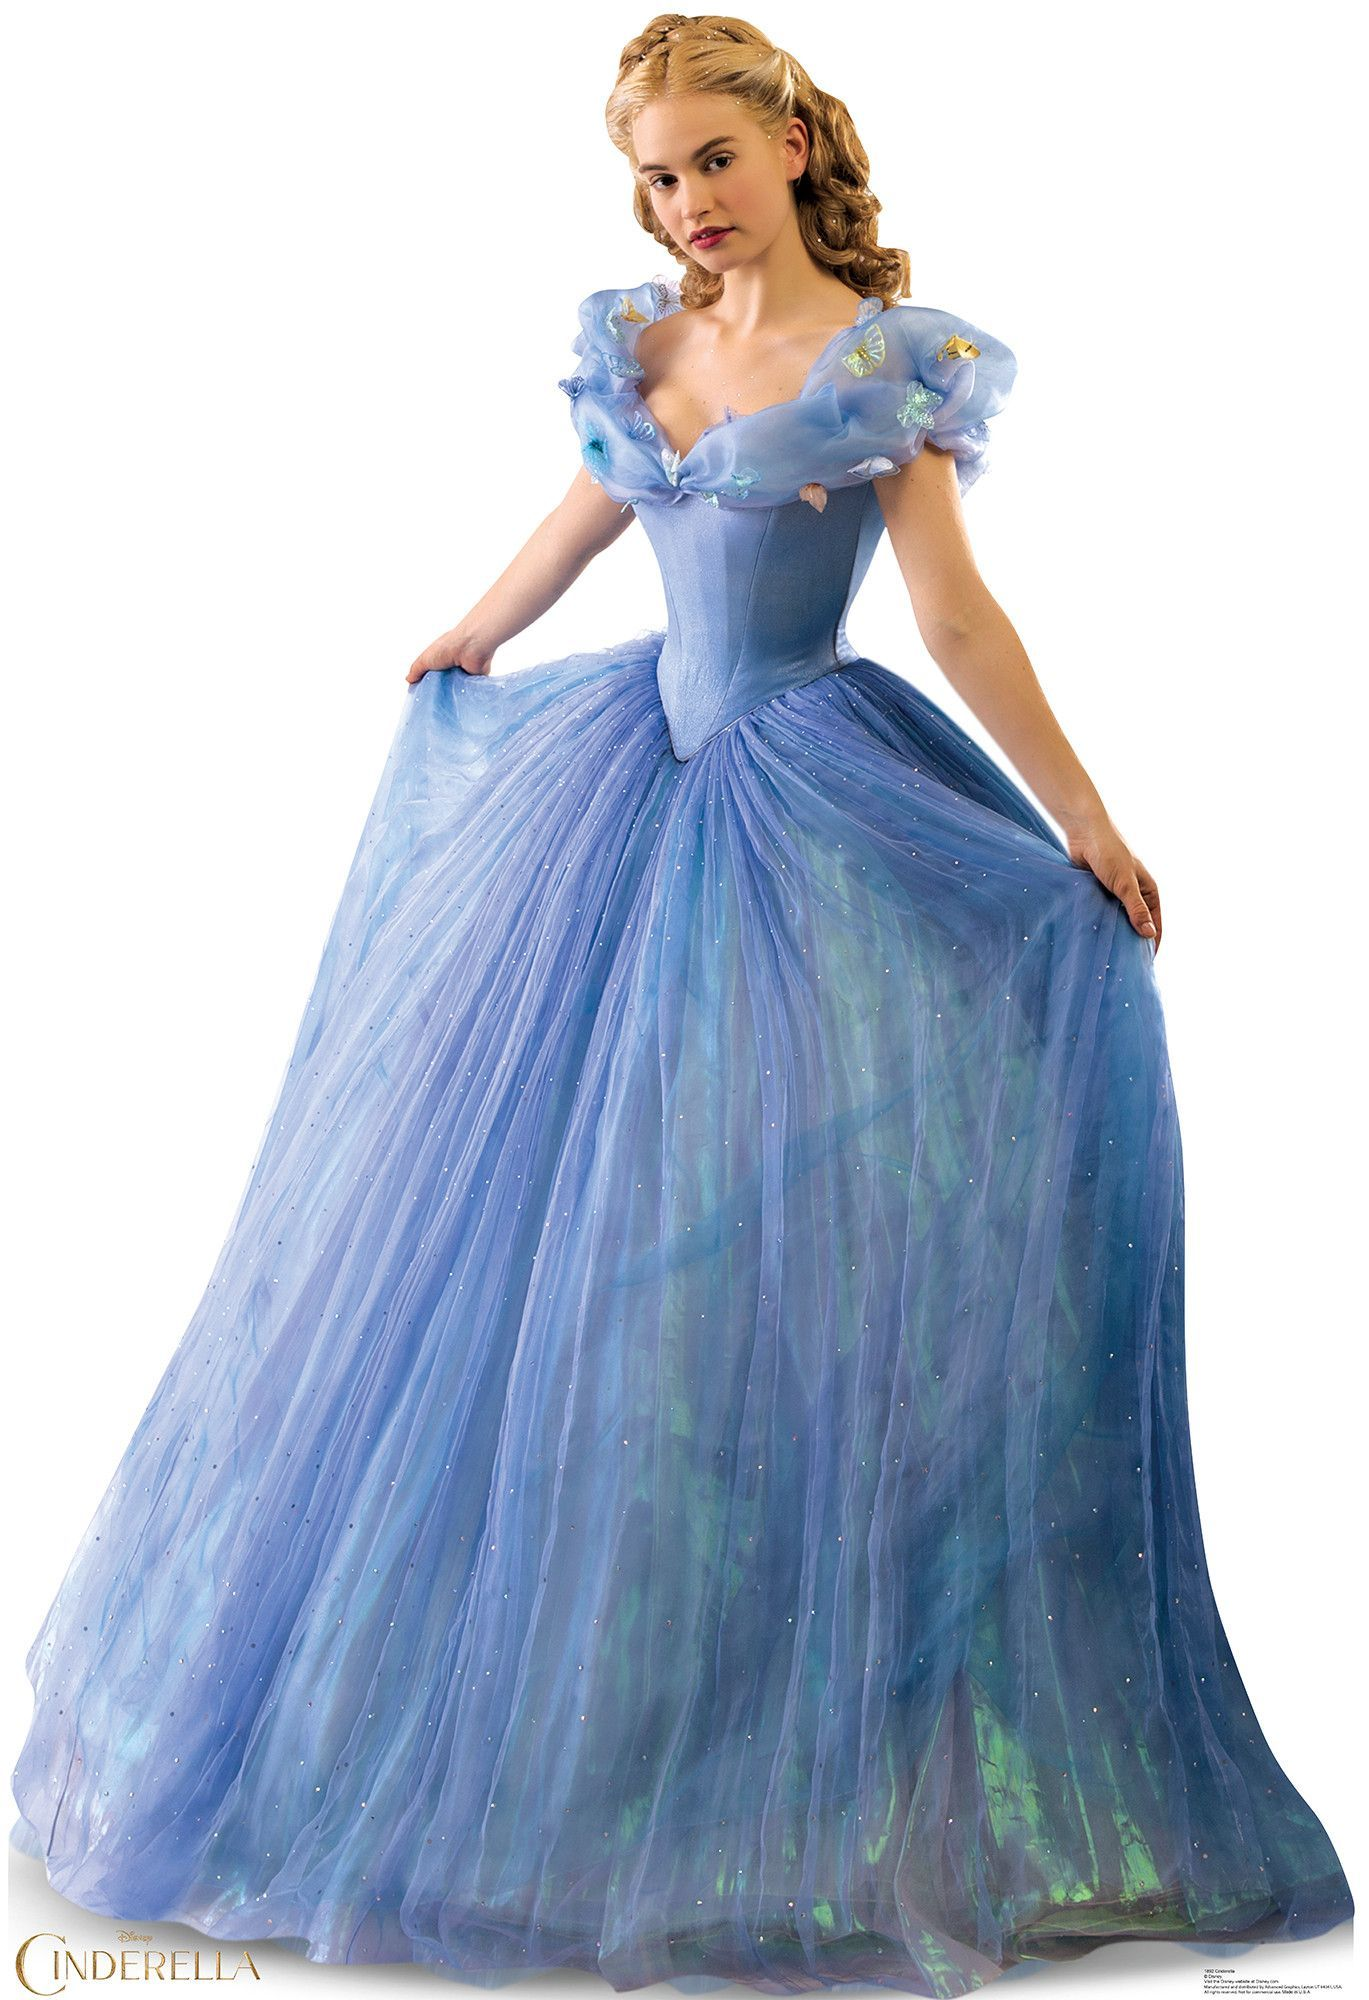 Dress up of cinderella - Features Easel Attaches To The Back To Make It Free Standing Folds